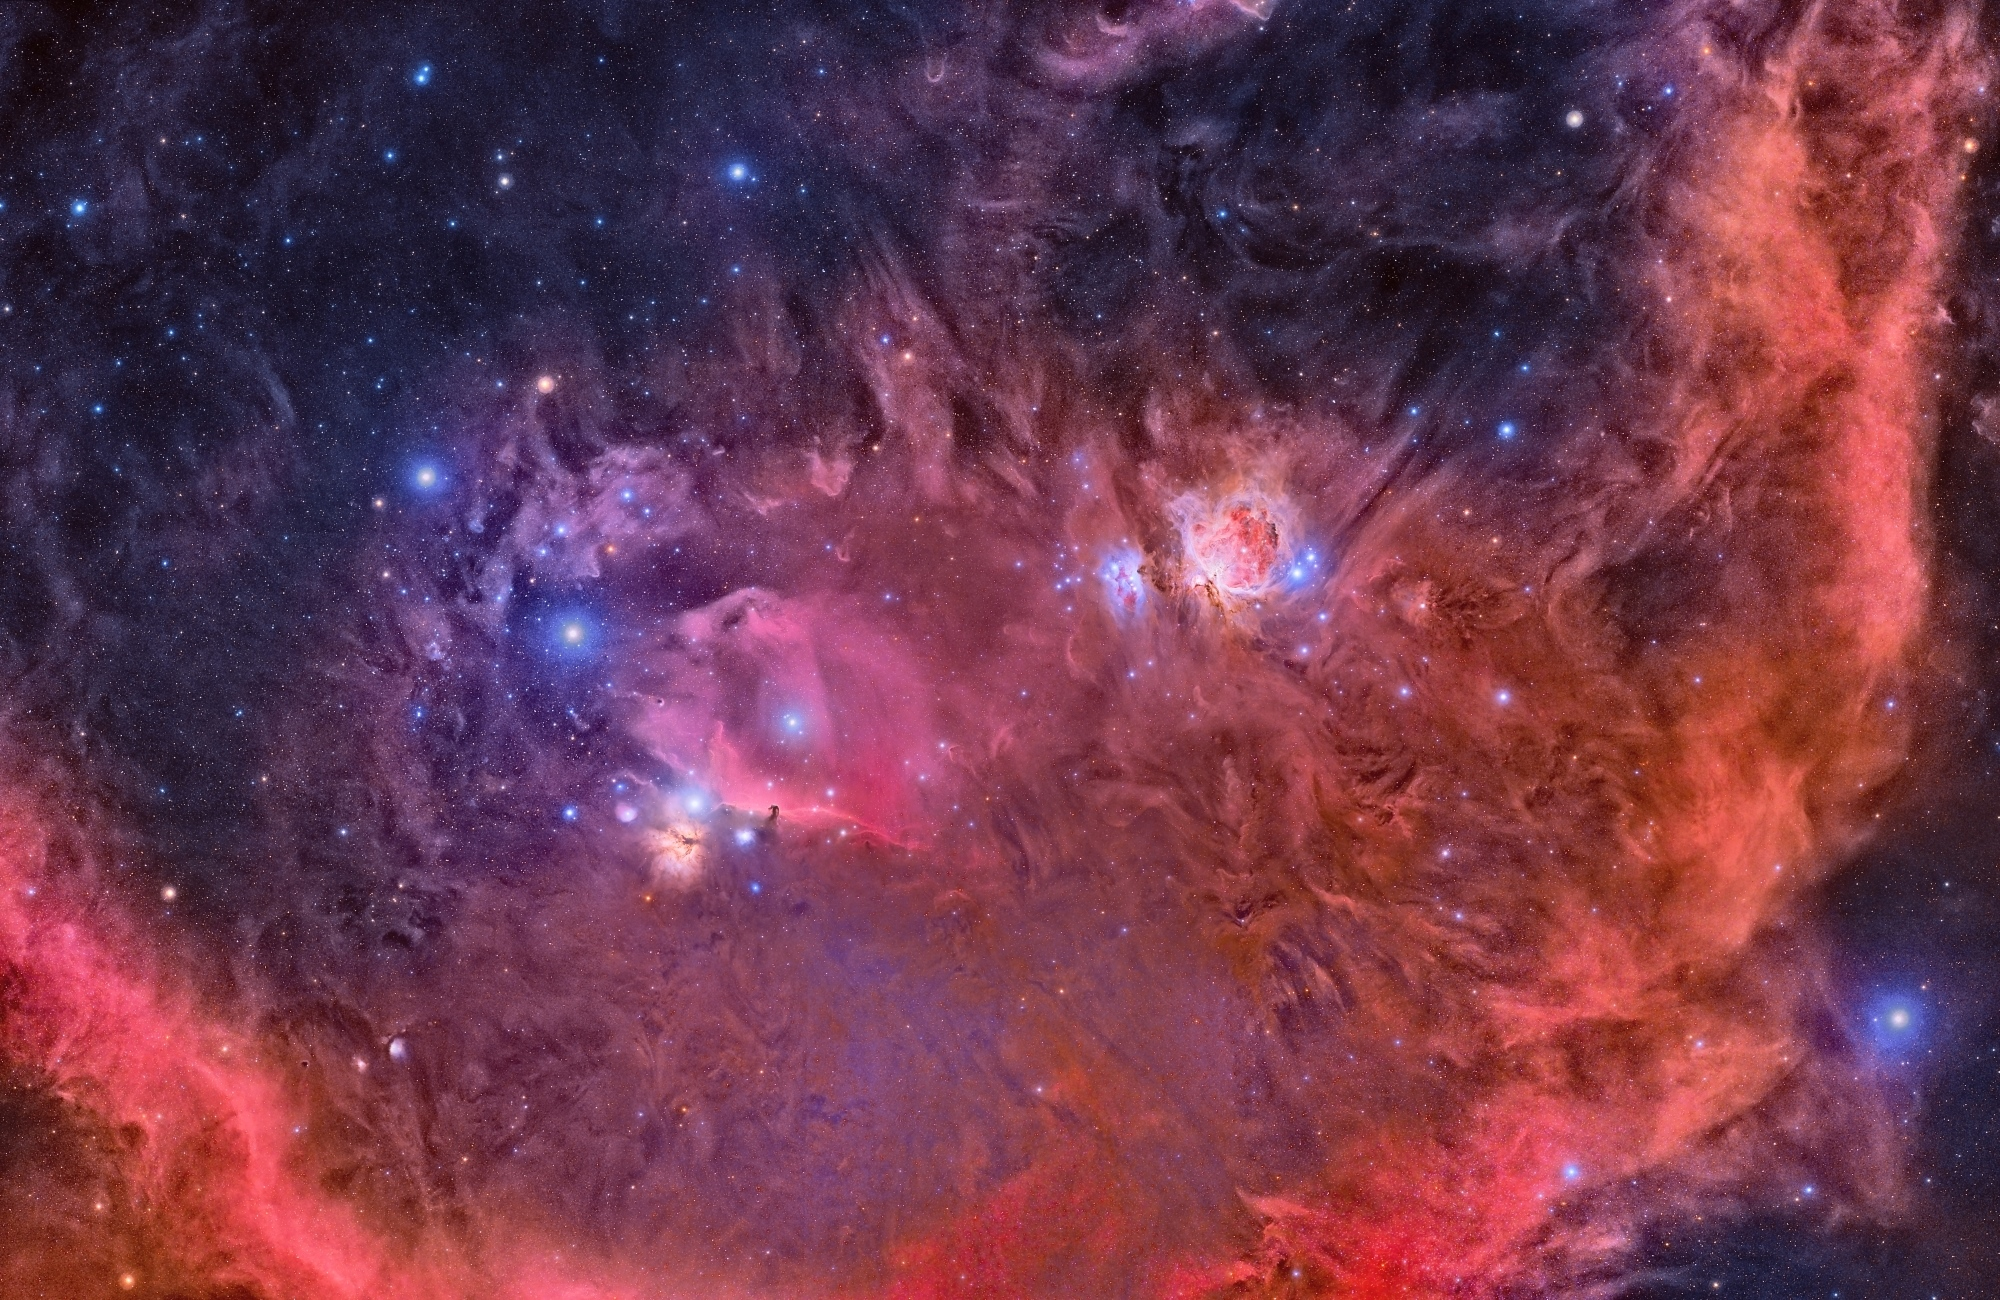 Orion by Raul Villaverde Fraile | Insight Investment Astronomy Photographer of the Year 2019 | Stars and Nebulae